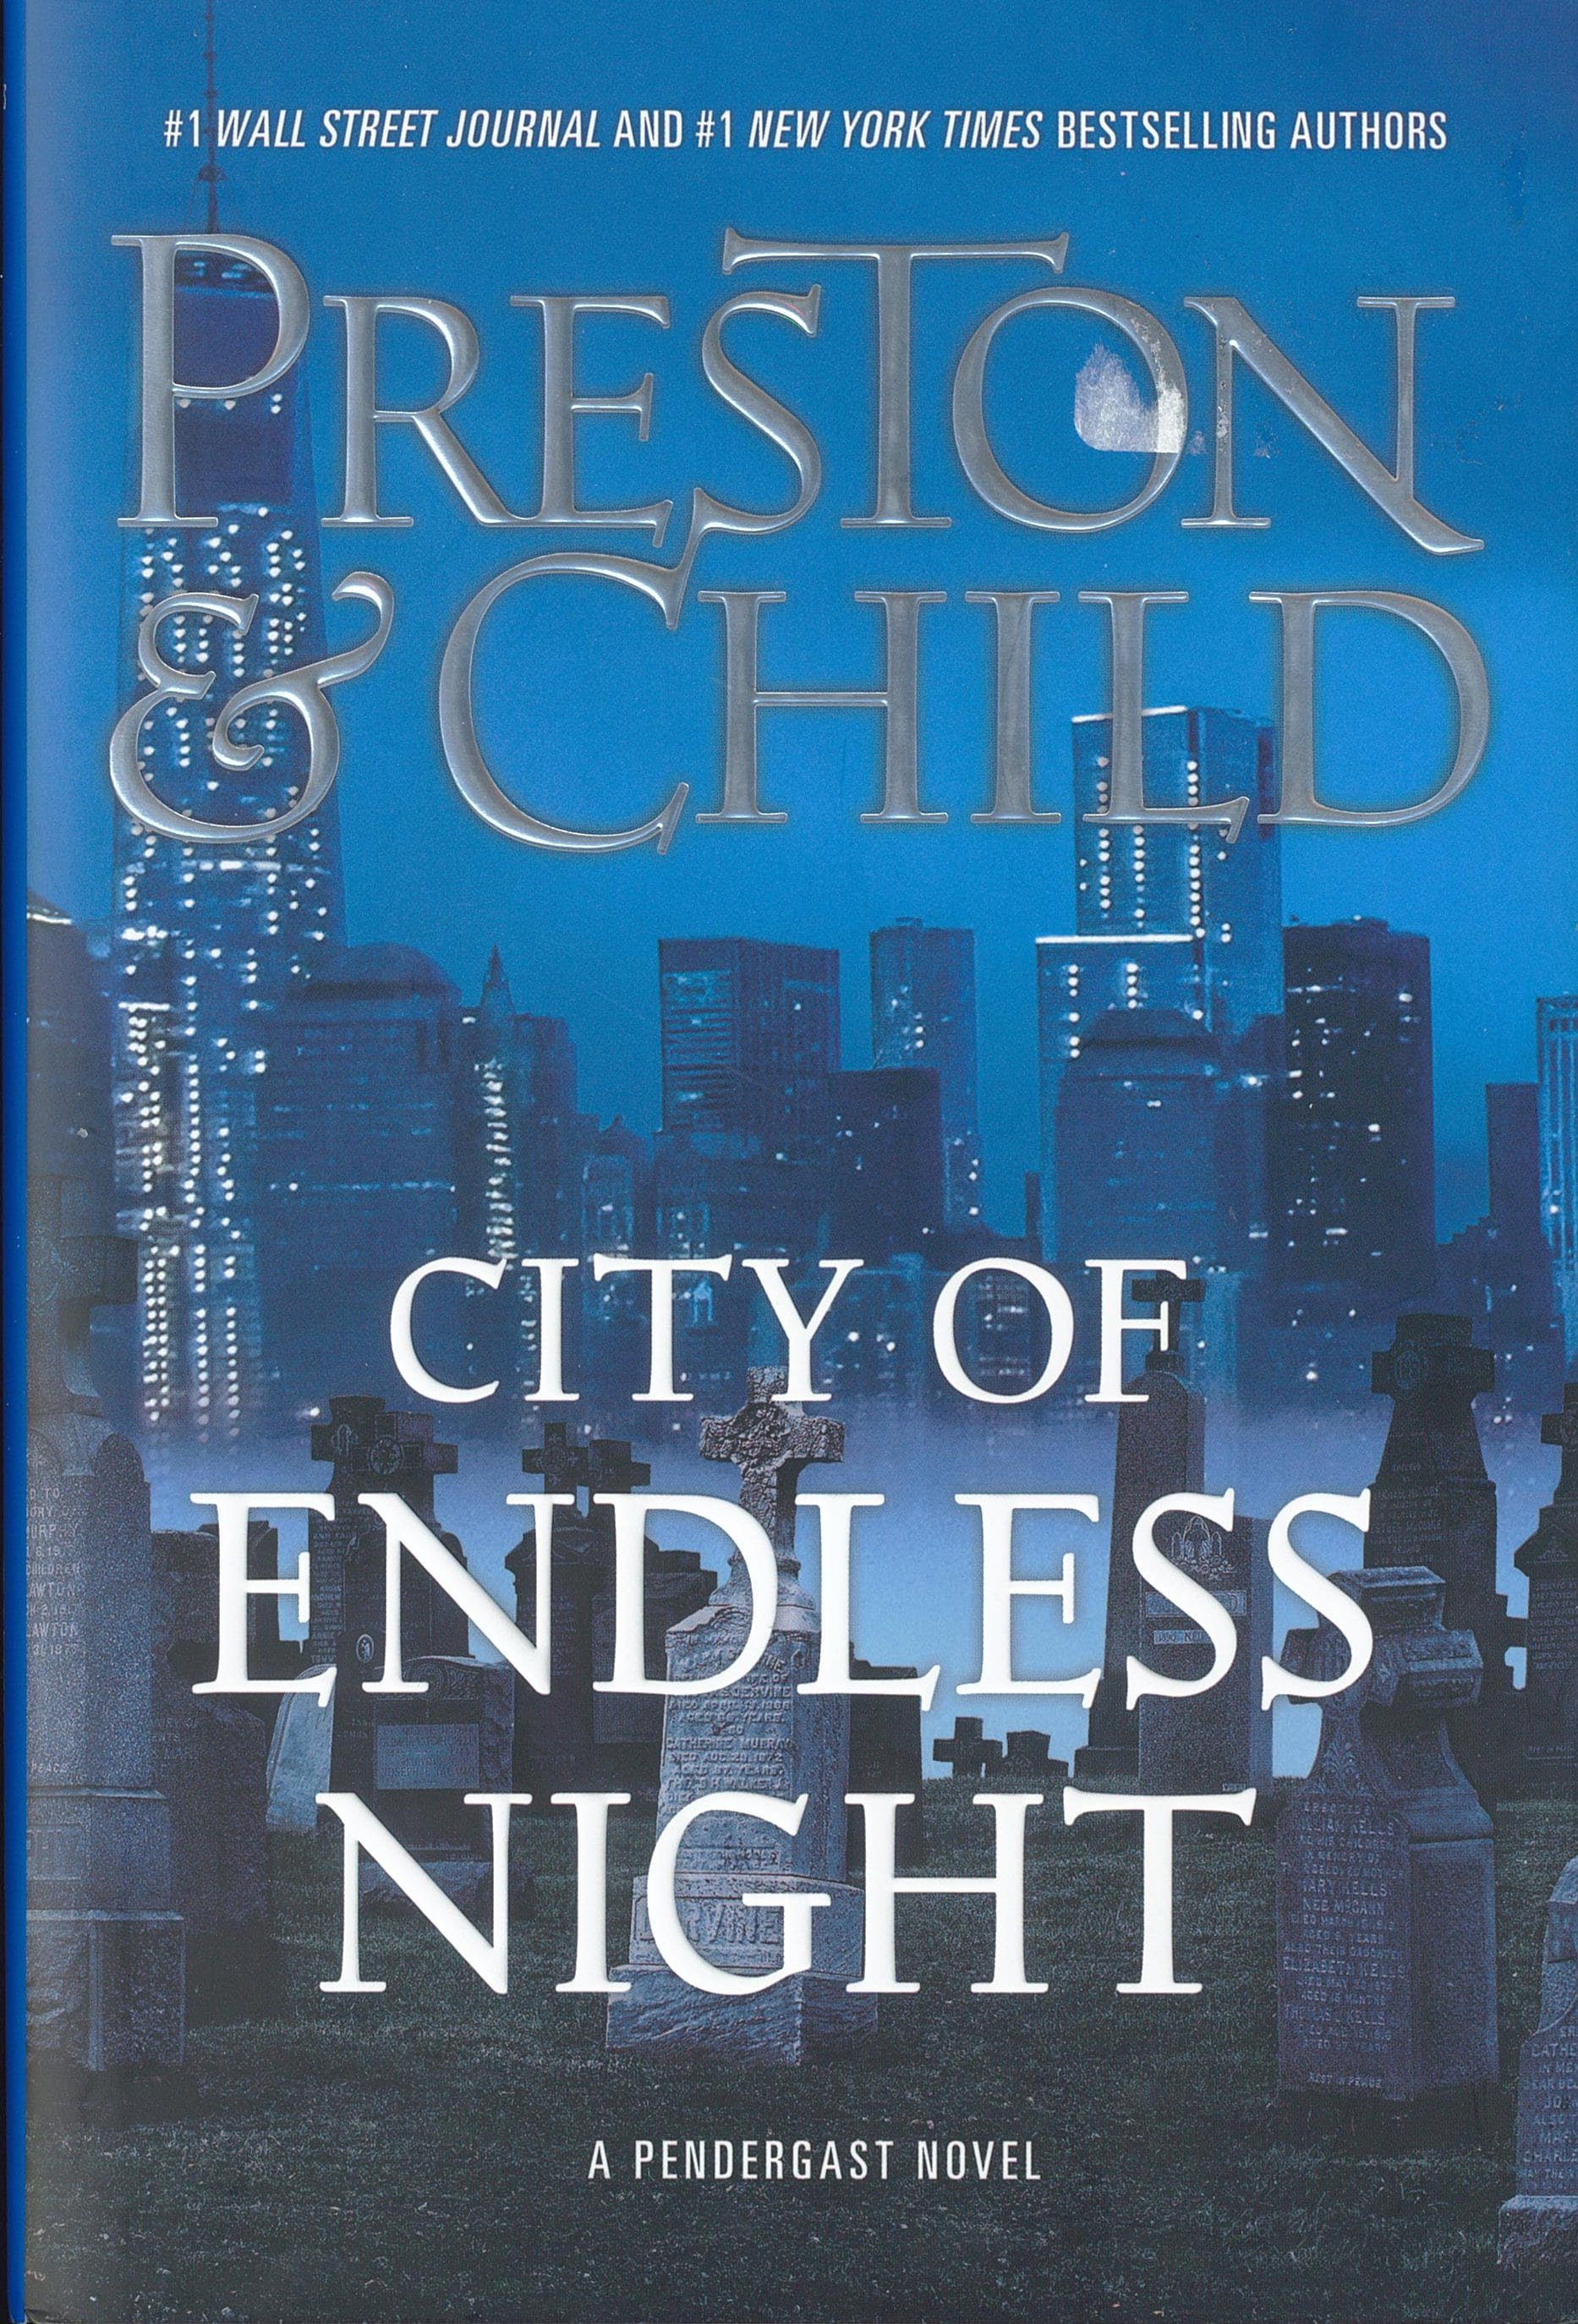 City of Endless Night Book Review By Ron Fortier